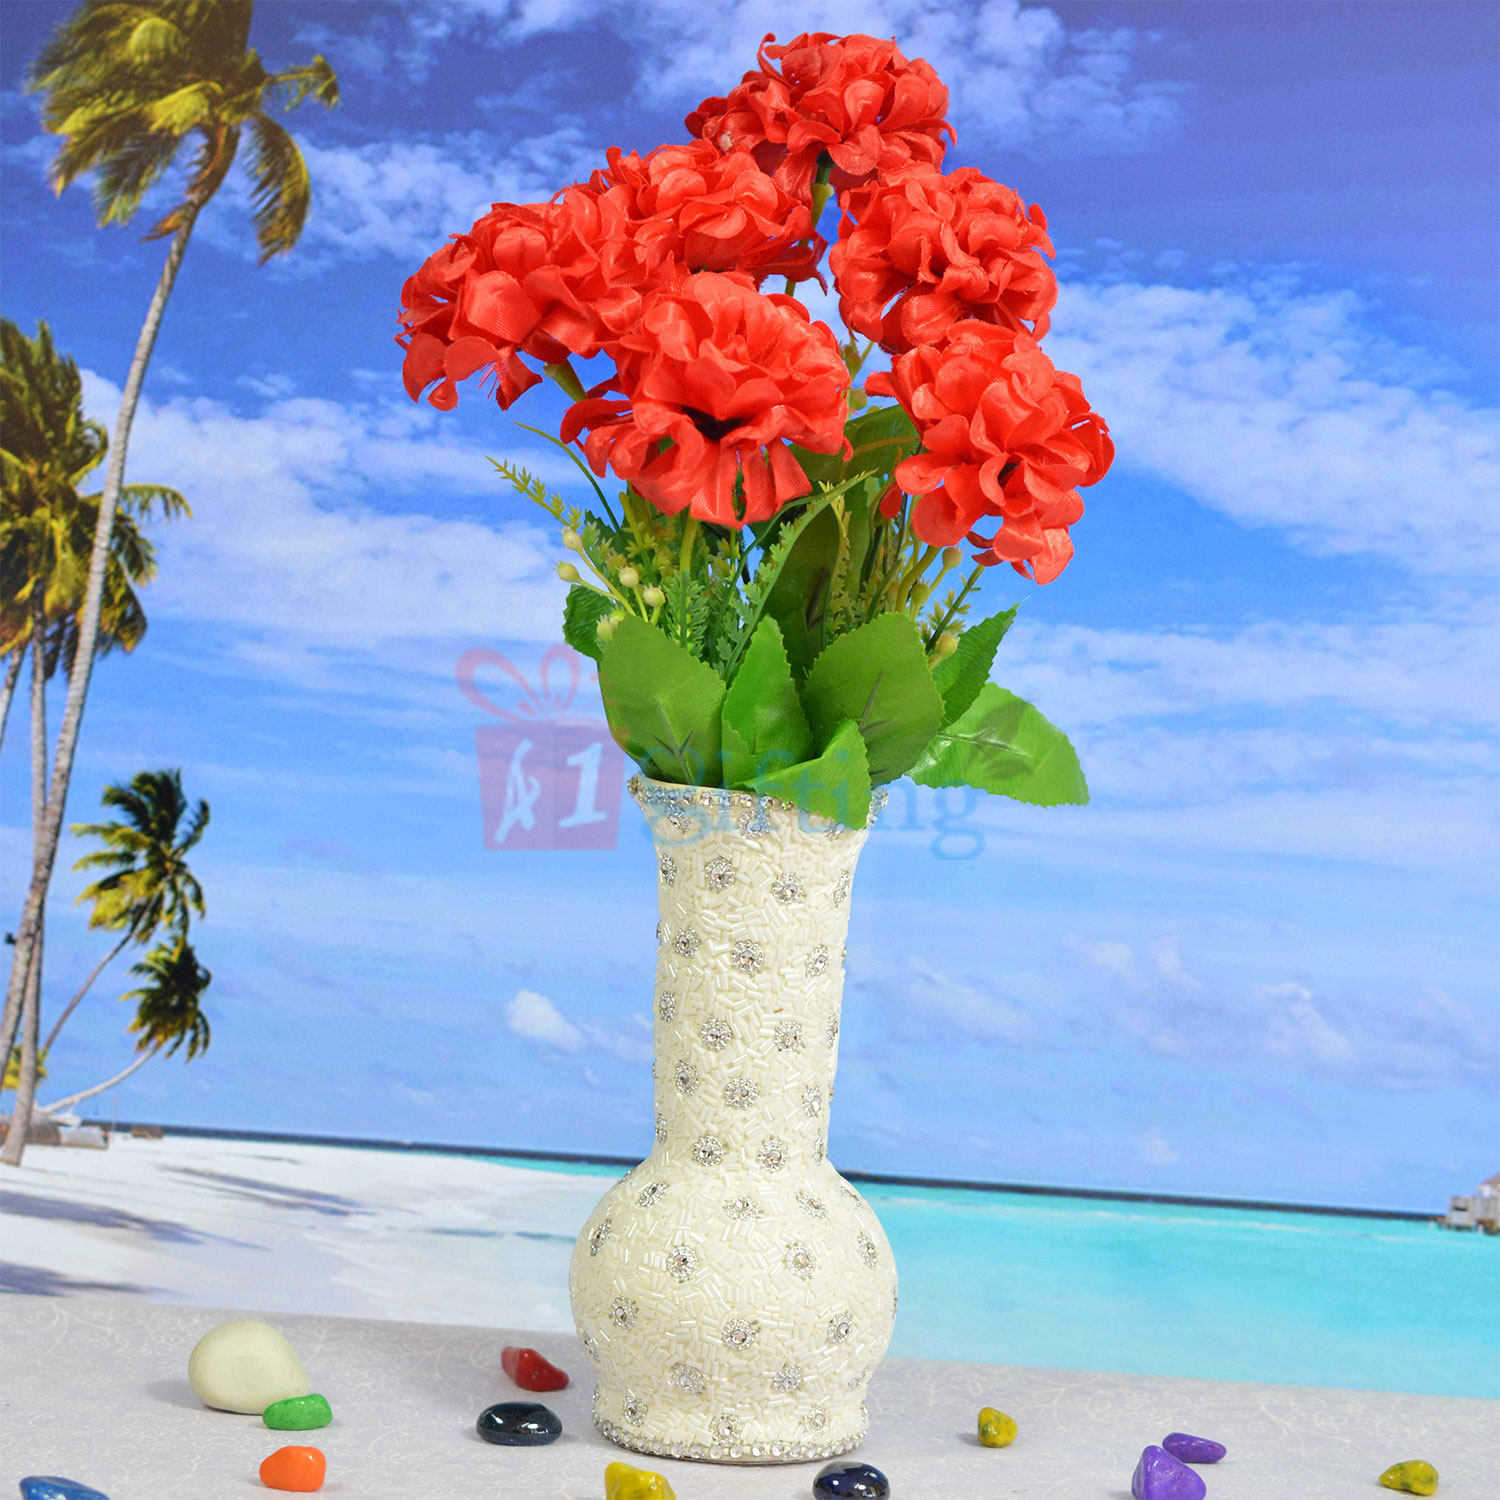 Decorative Flower Pot with Beautiful Flowers